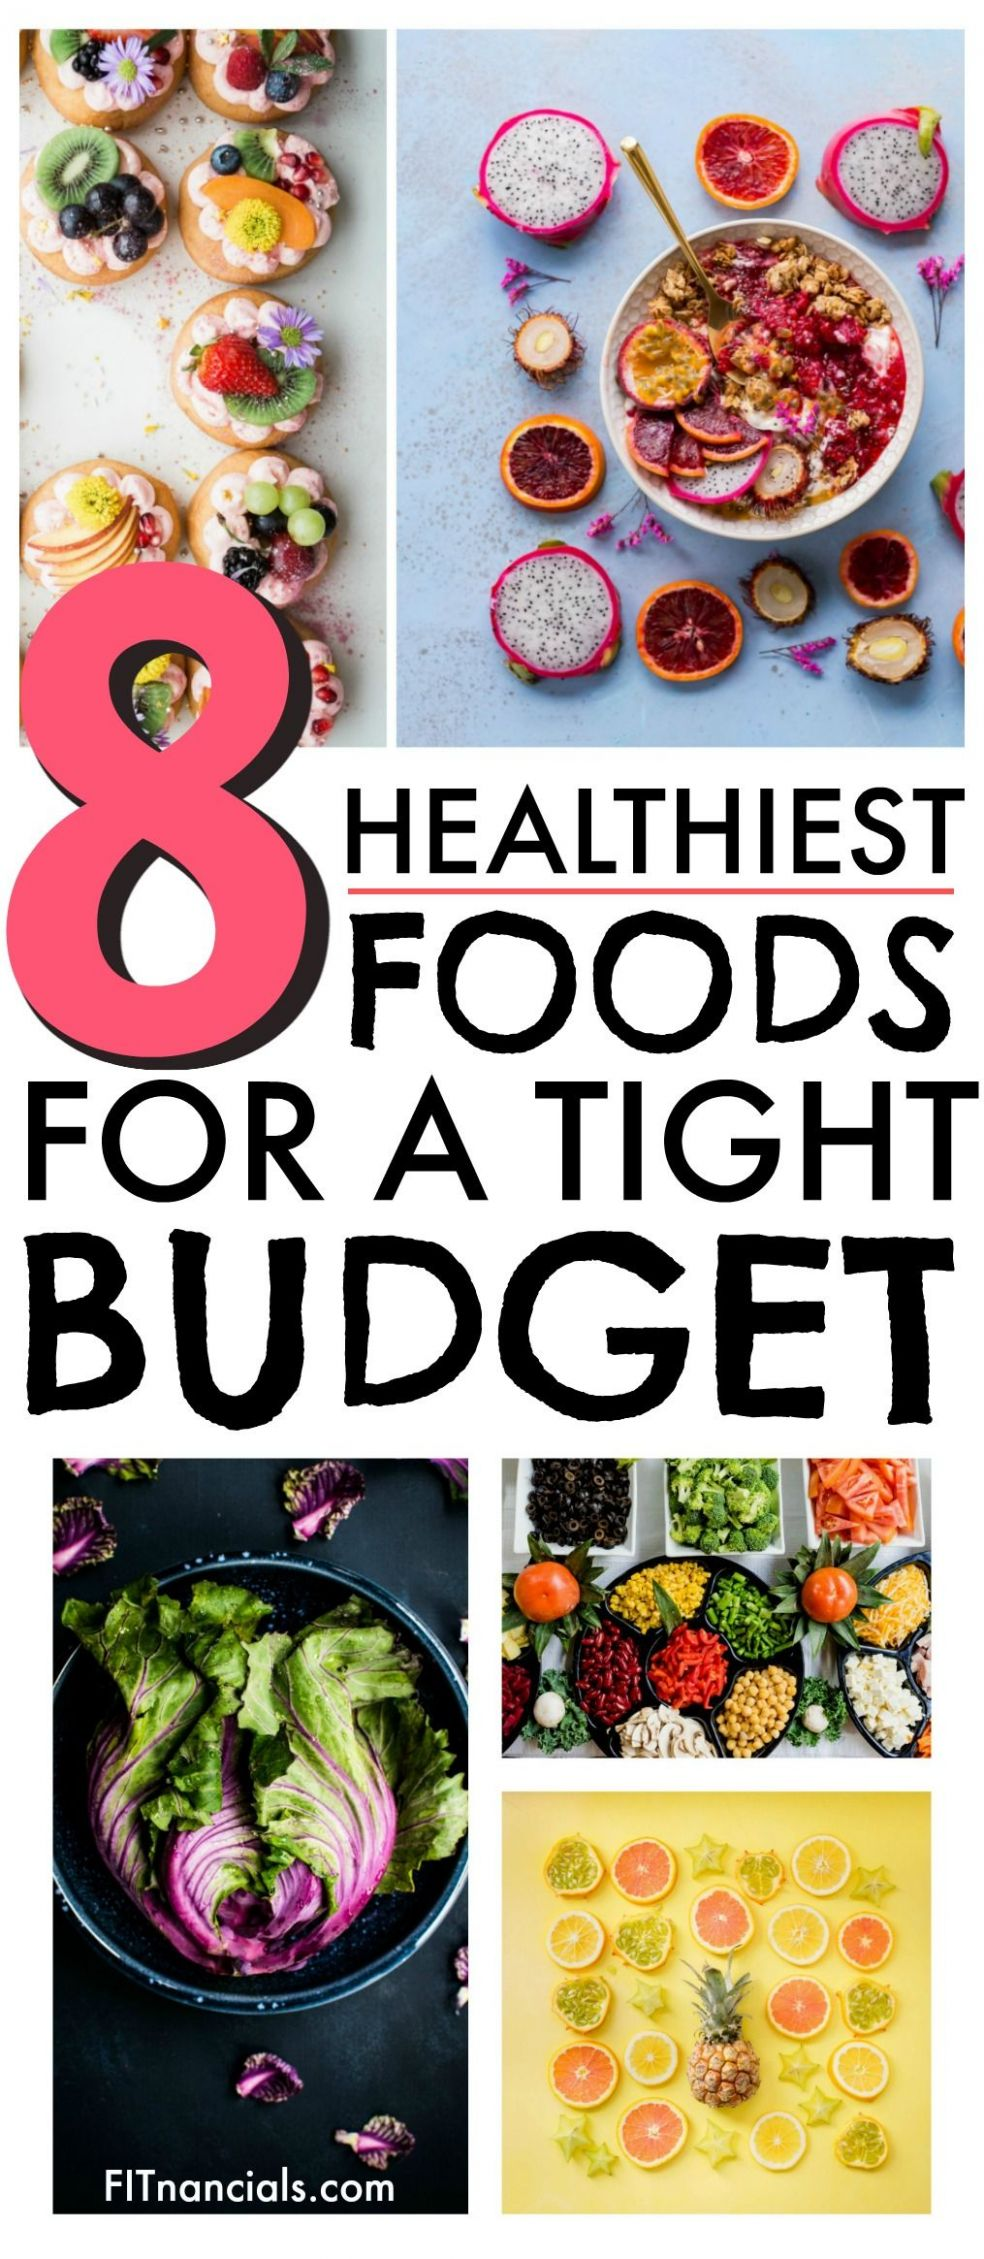 Healthiest Foods For A Tight Budget | Money saving meals, Healthy ..